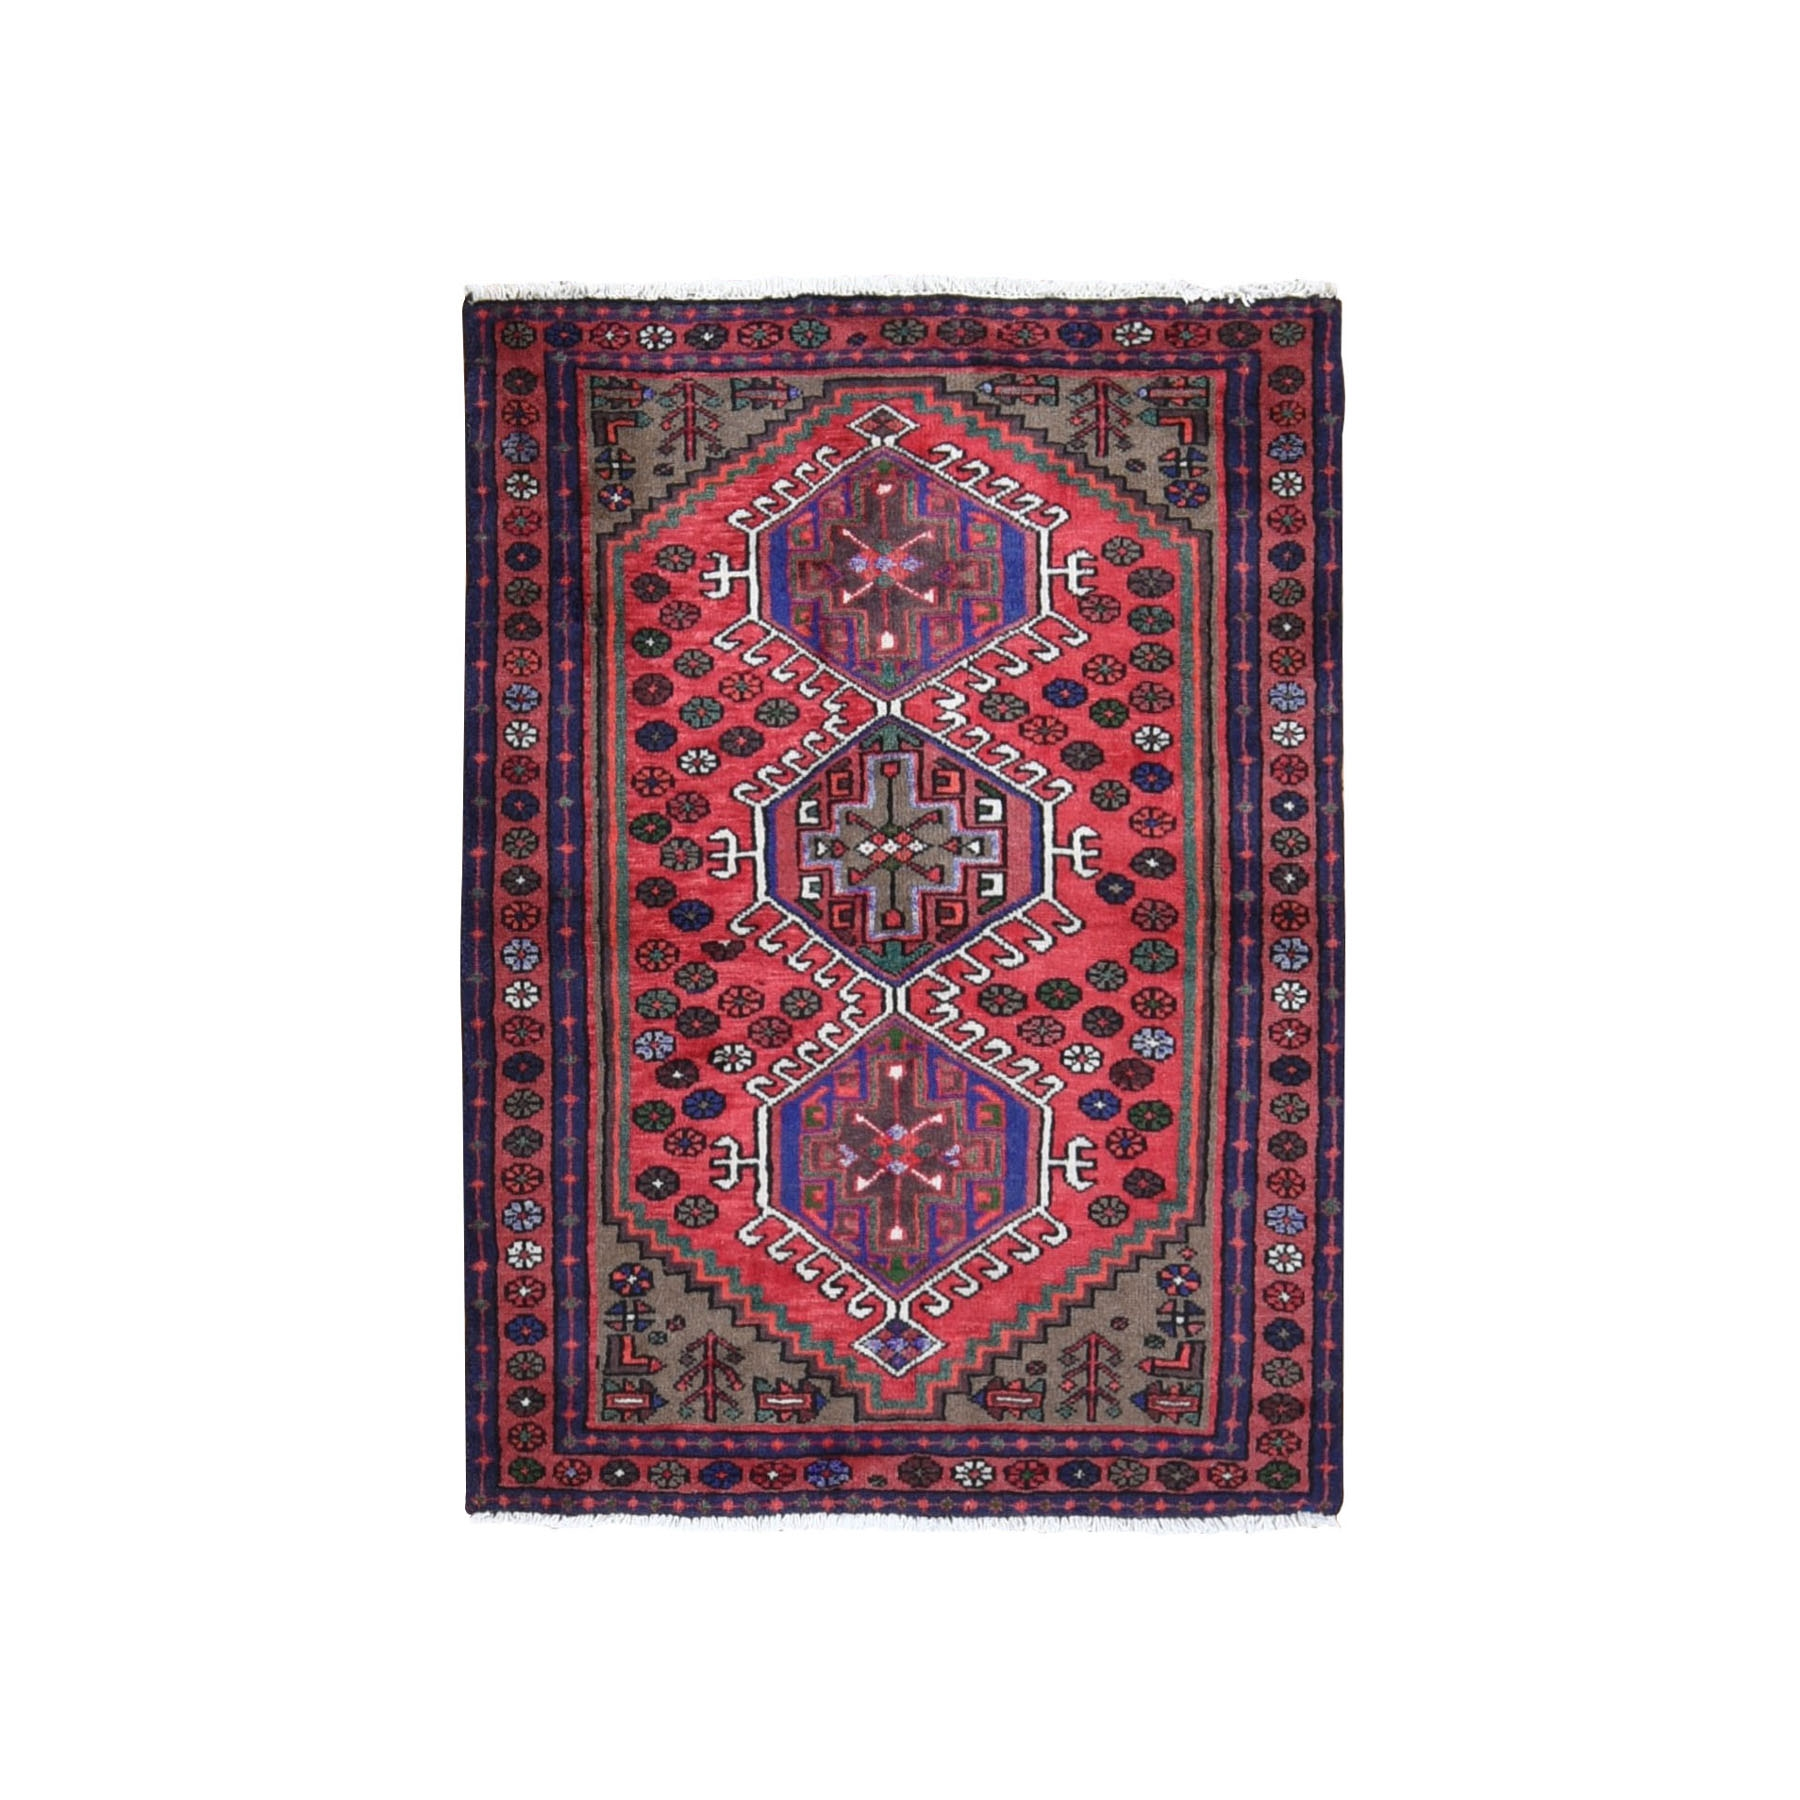 "3'5""X4'9"" Red New Persian Karajeh Geometric Design Pure Wool Hand Knotted Bohemian Rug moad98d7"